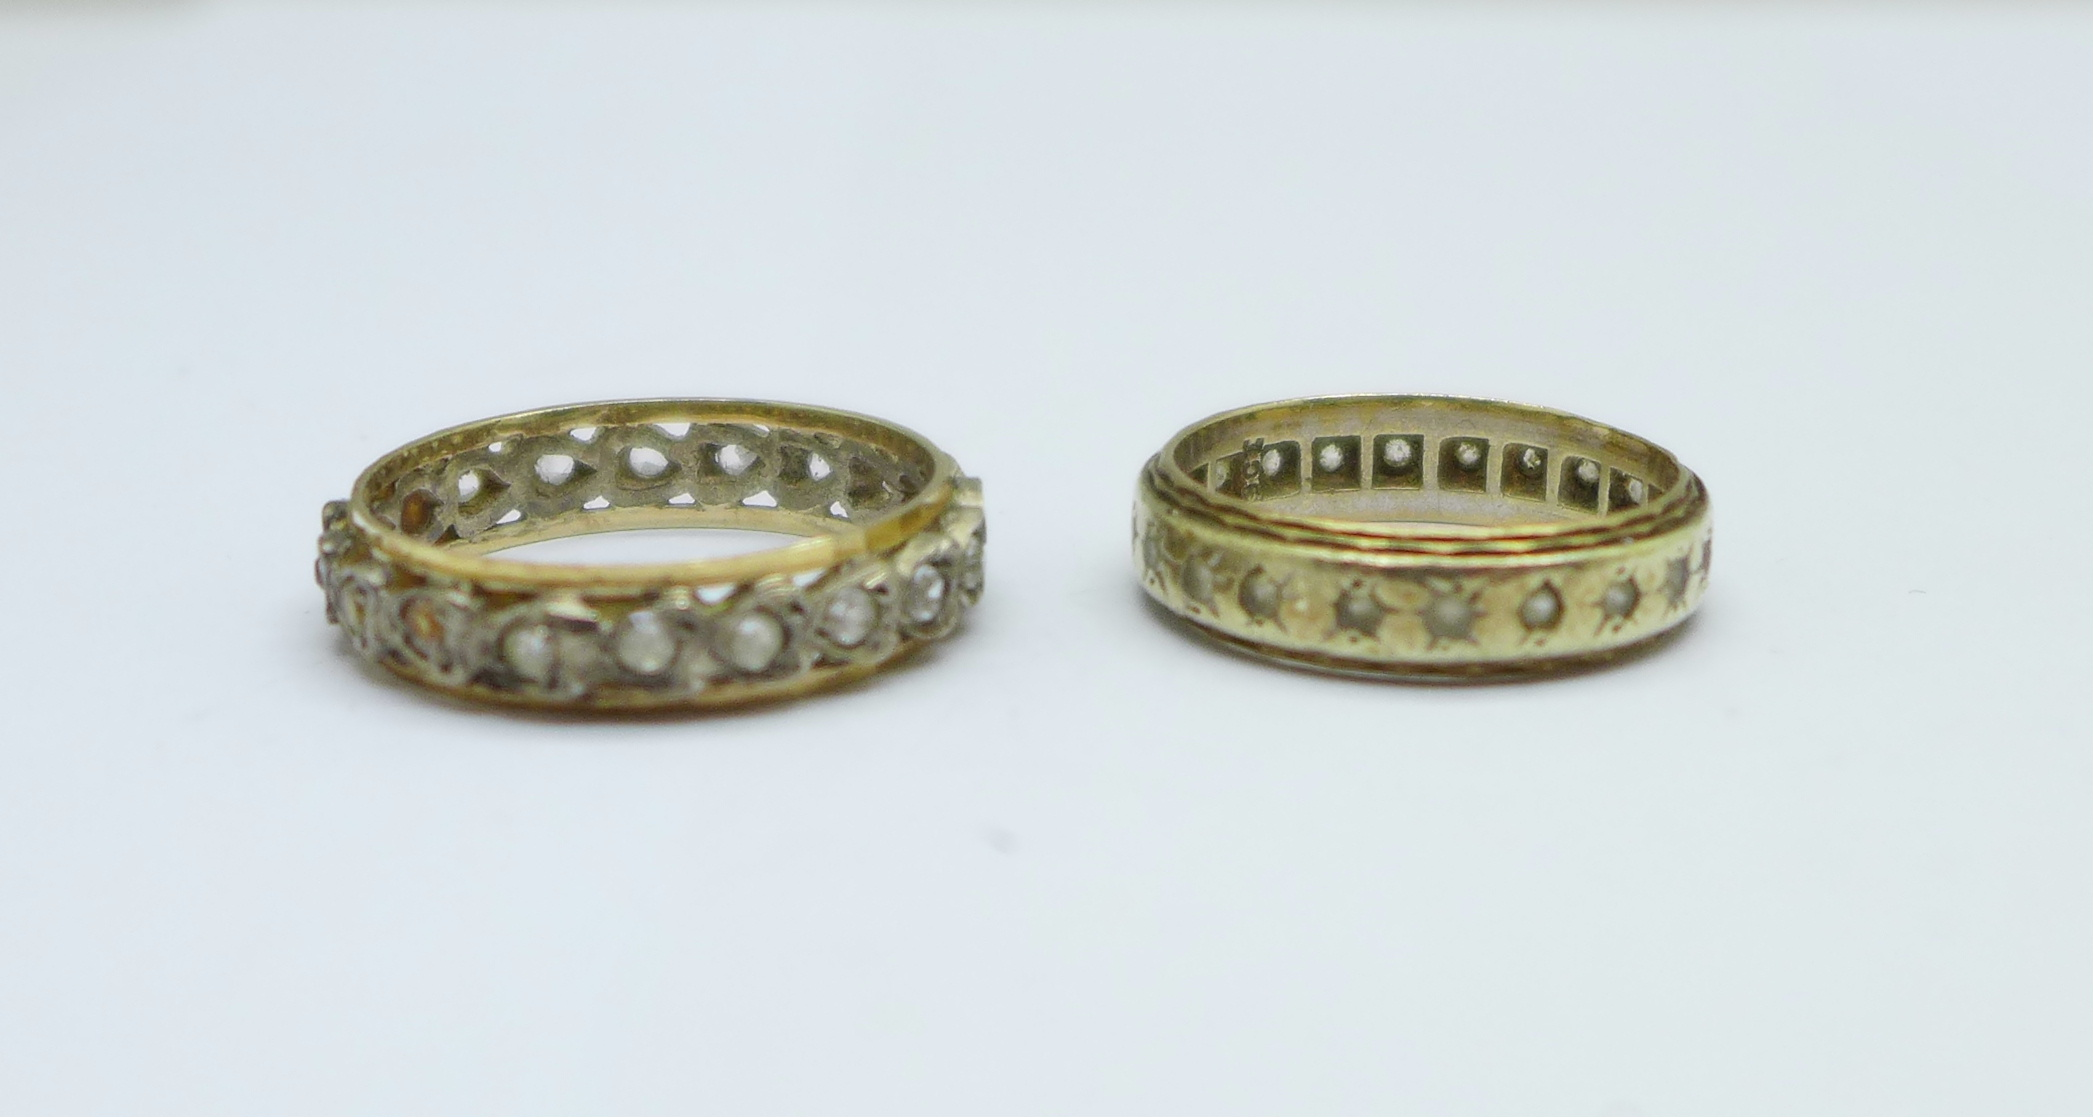 Two 9ct gold and silver rings, L and R, 5.6g - Image 2 of 3